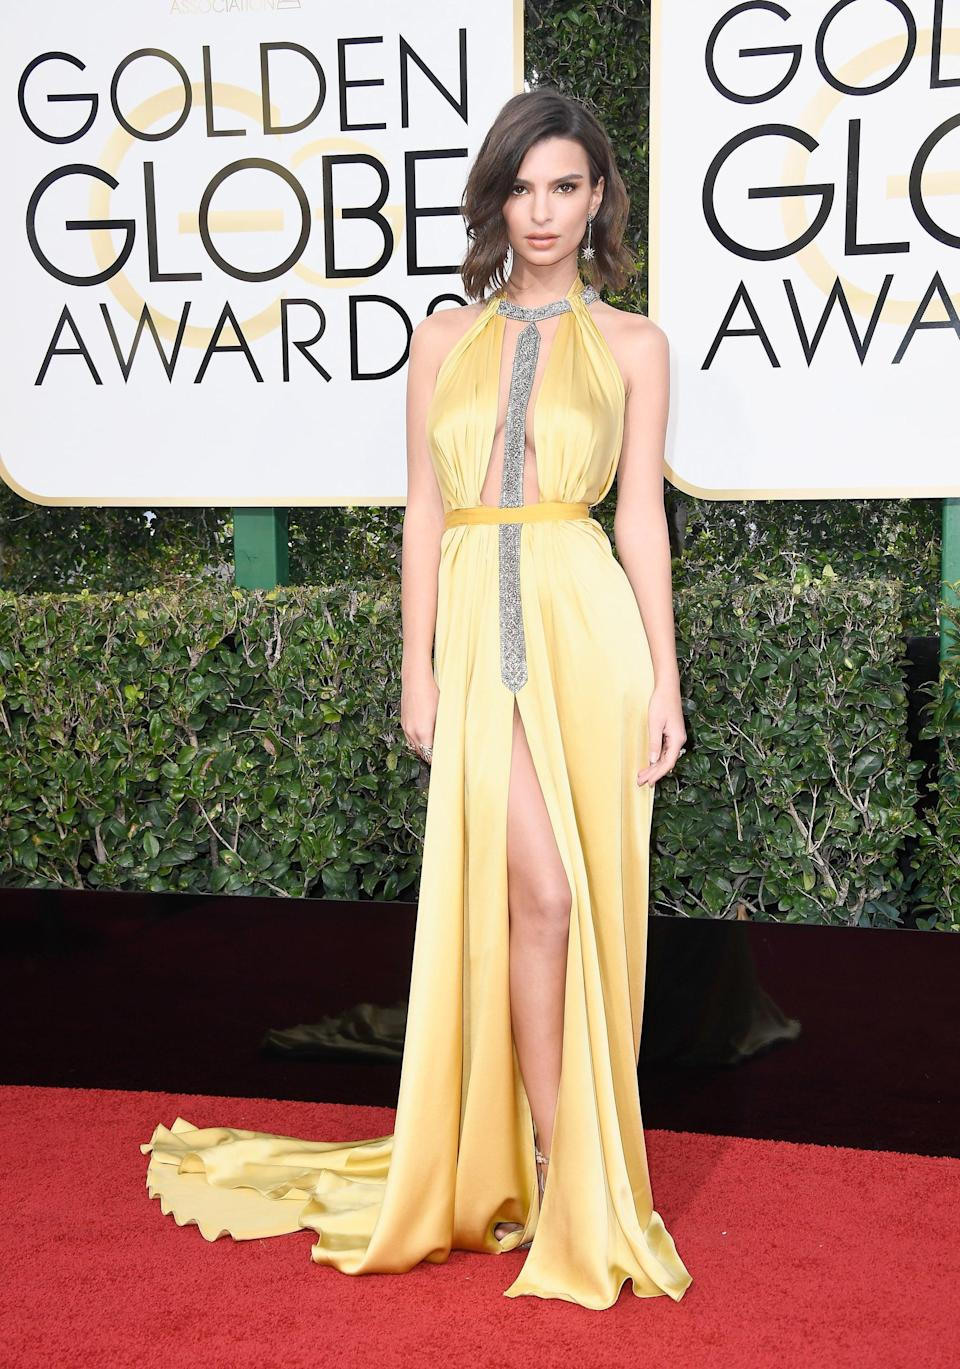 <p>Emily wore a gold cutout Reem Acra gown, Stuart Weitzman heels, and H. Stern 18k gold earrings to the 2017 Golden Globe Awards.</p>